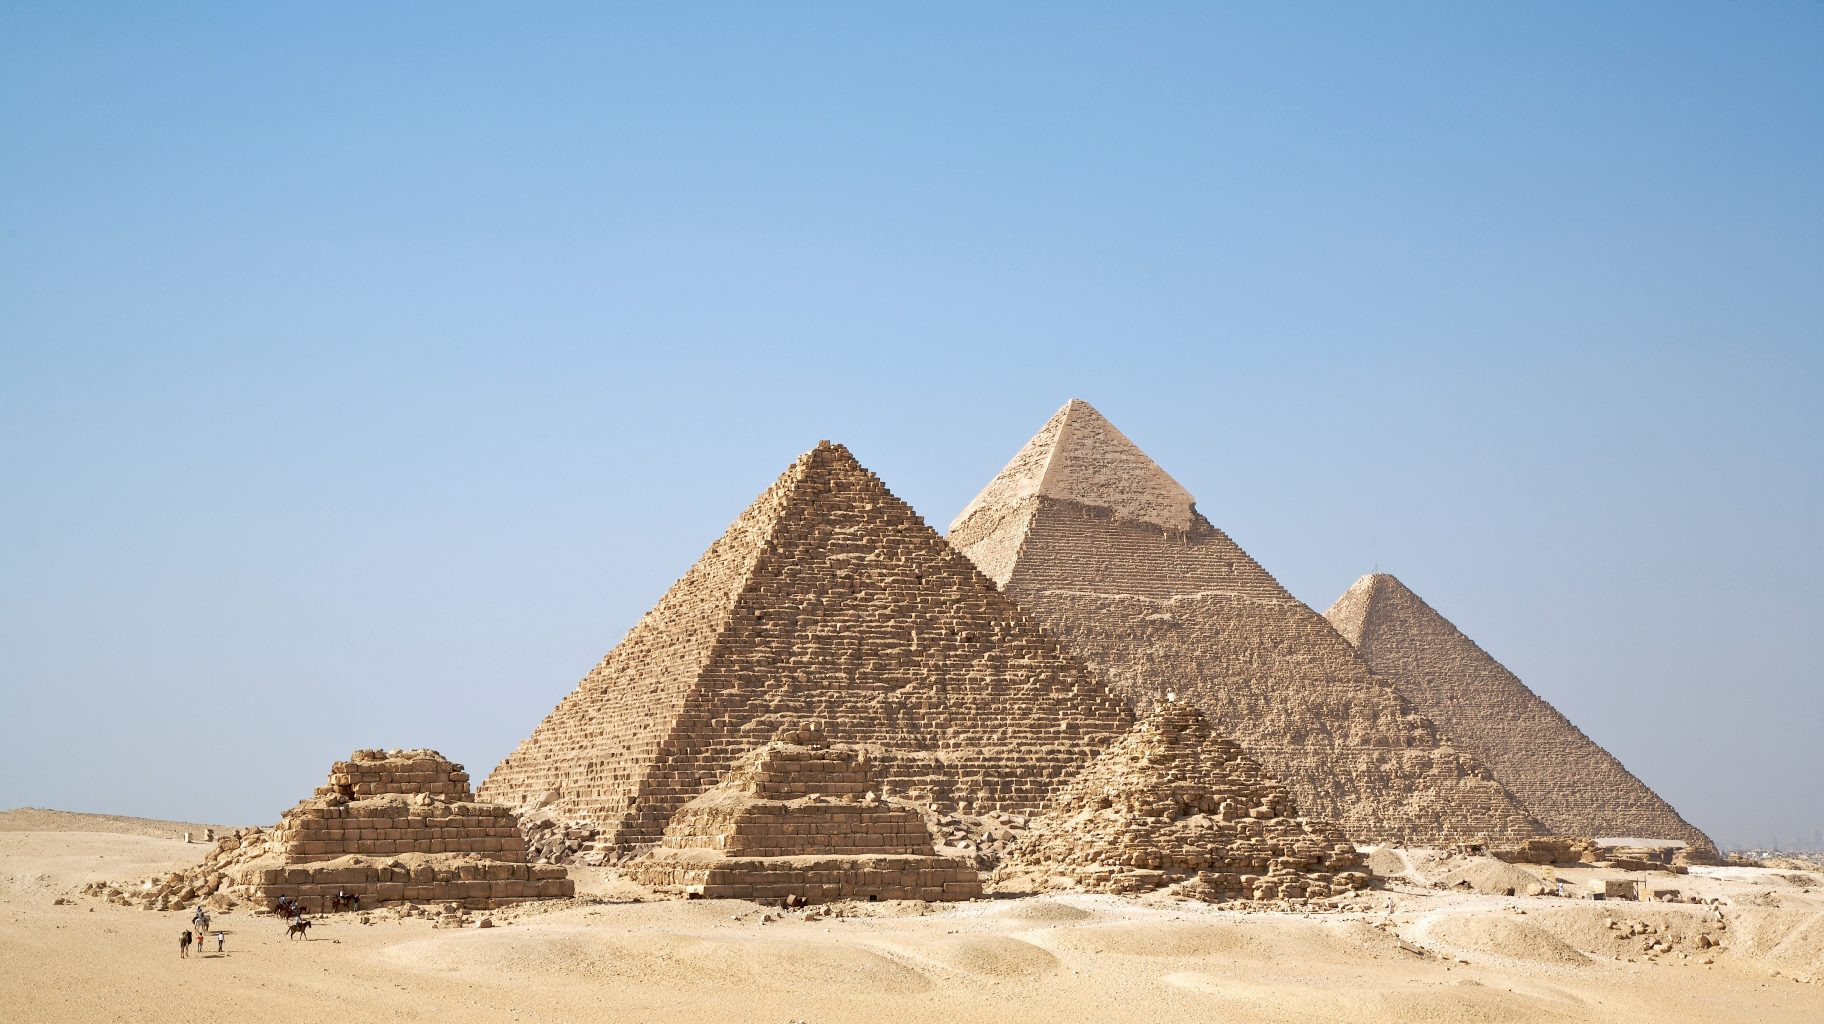 Image: 6 Ancient Giza Pyramids of Egypt built without the use of advanced technology